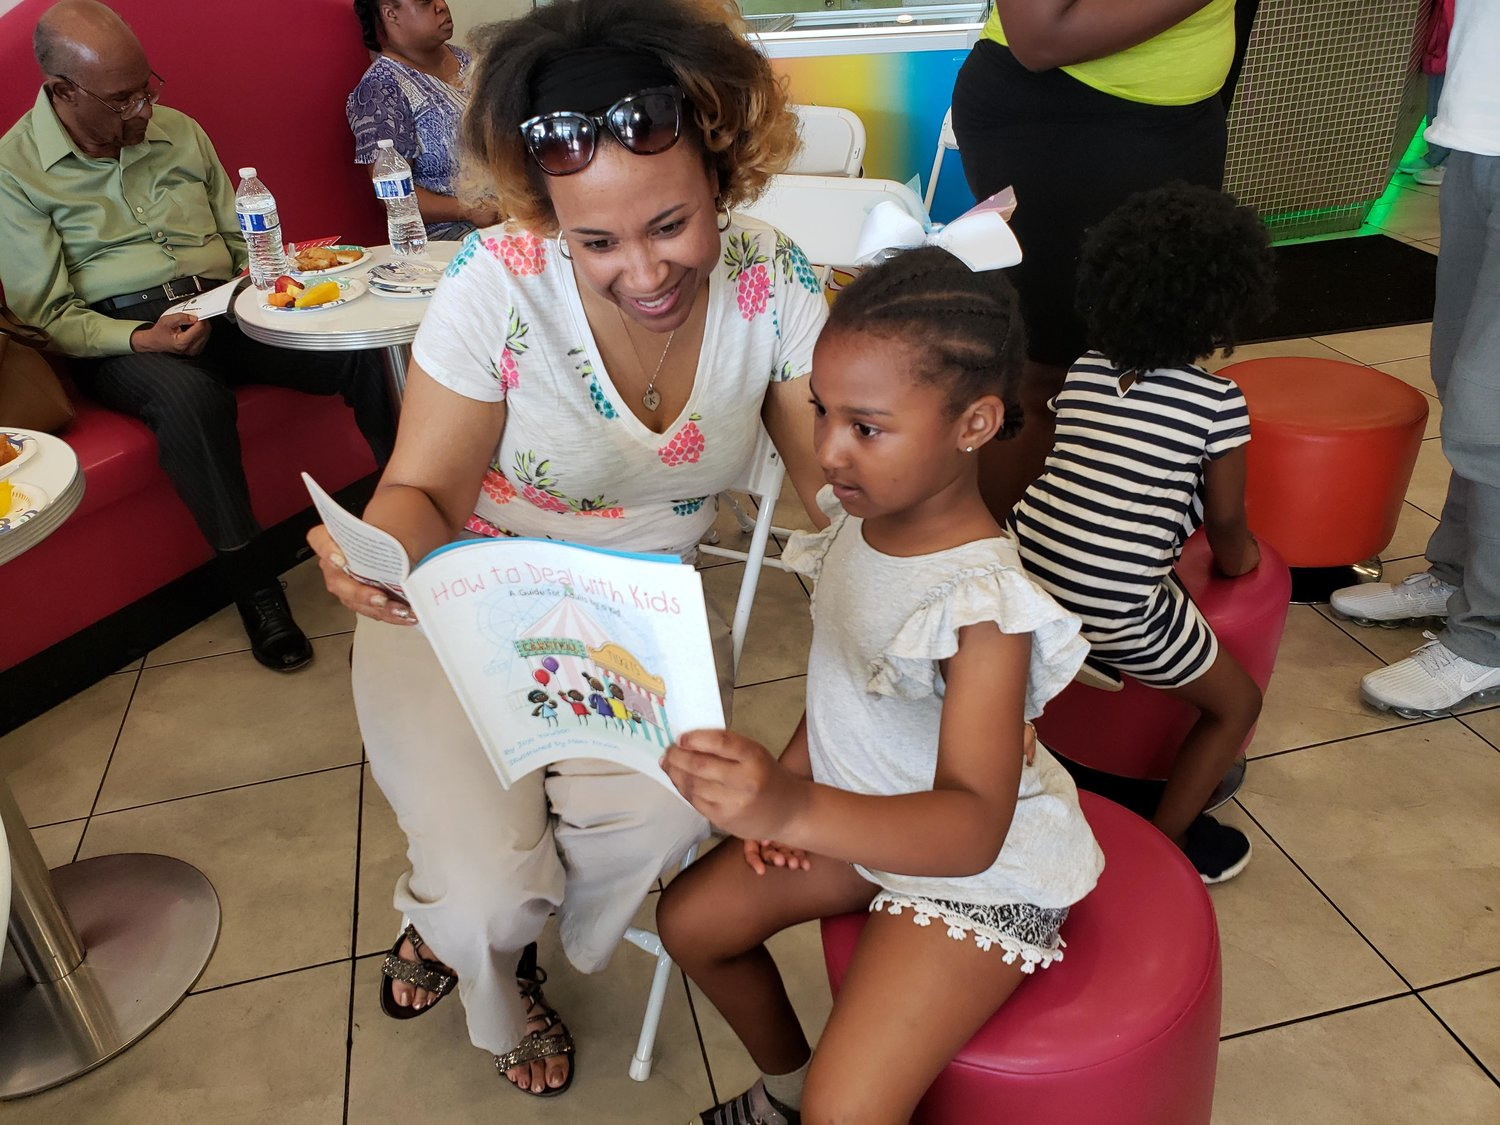 Baldwin Harbor mom, Katrina Graham, left, listened to her daughter Aleeyah, 6, read pages of the book after Jojo Yawson's presentation.